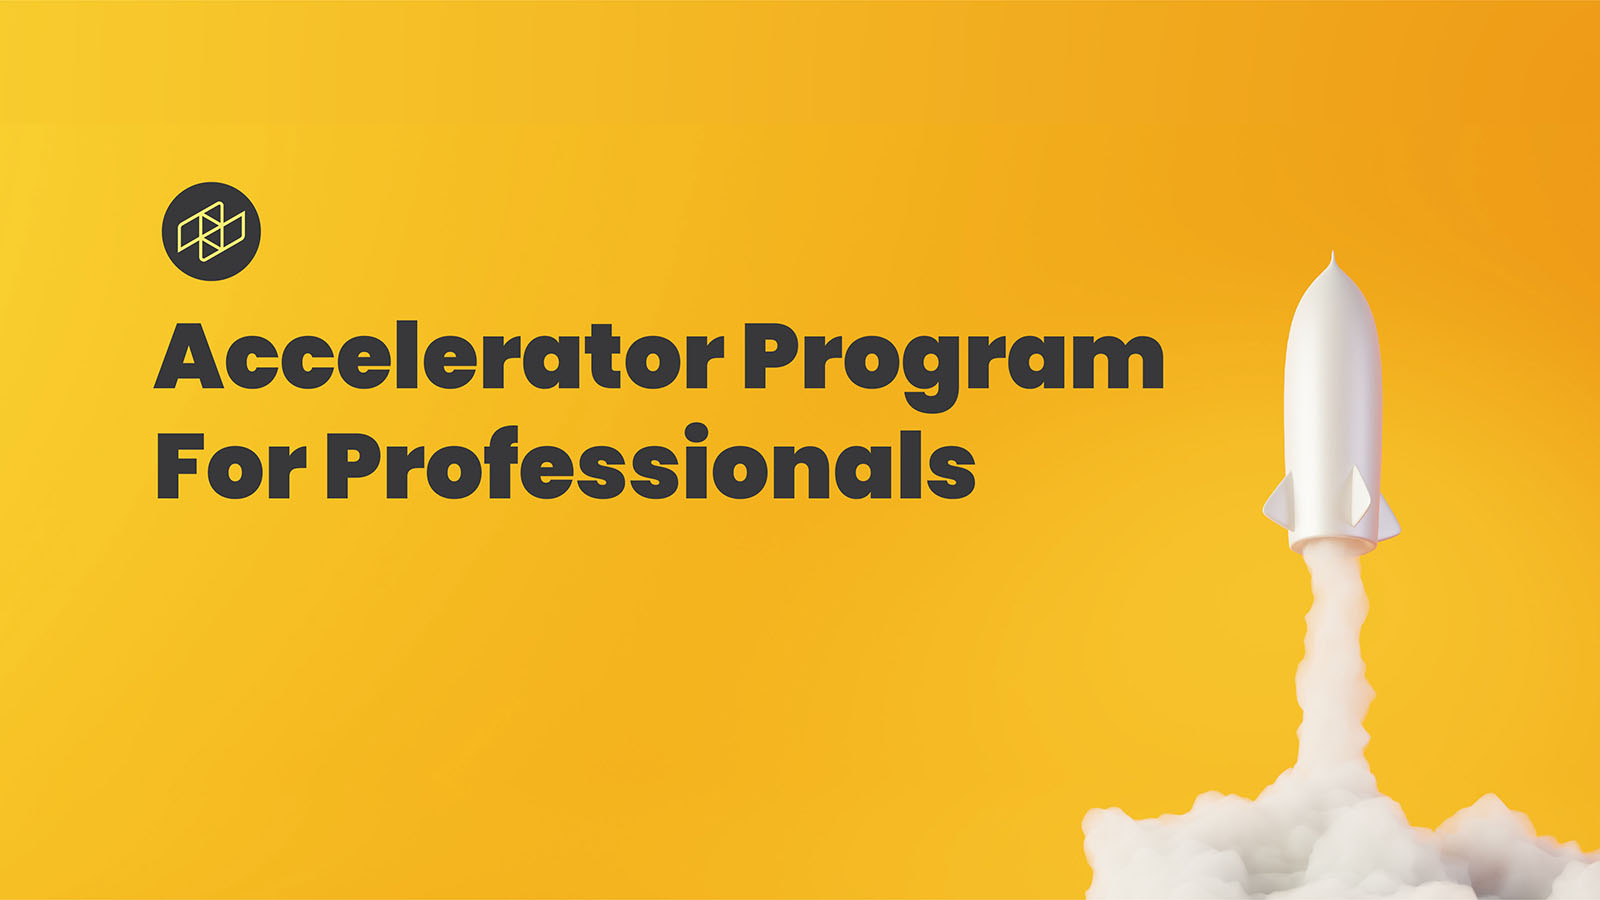 Helm's Accelerator Program for Professionals offers a tremendous amount of value and support